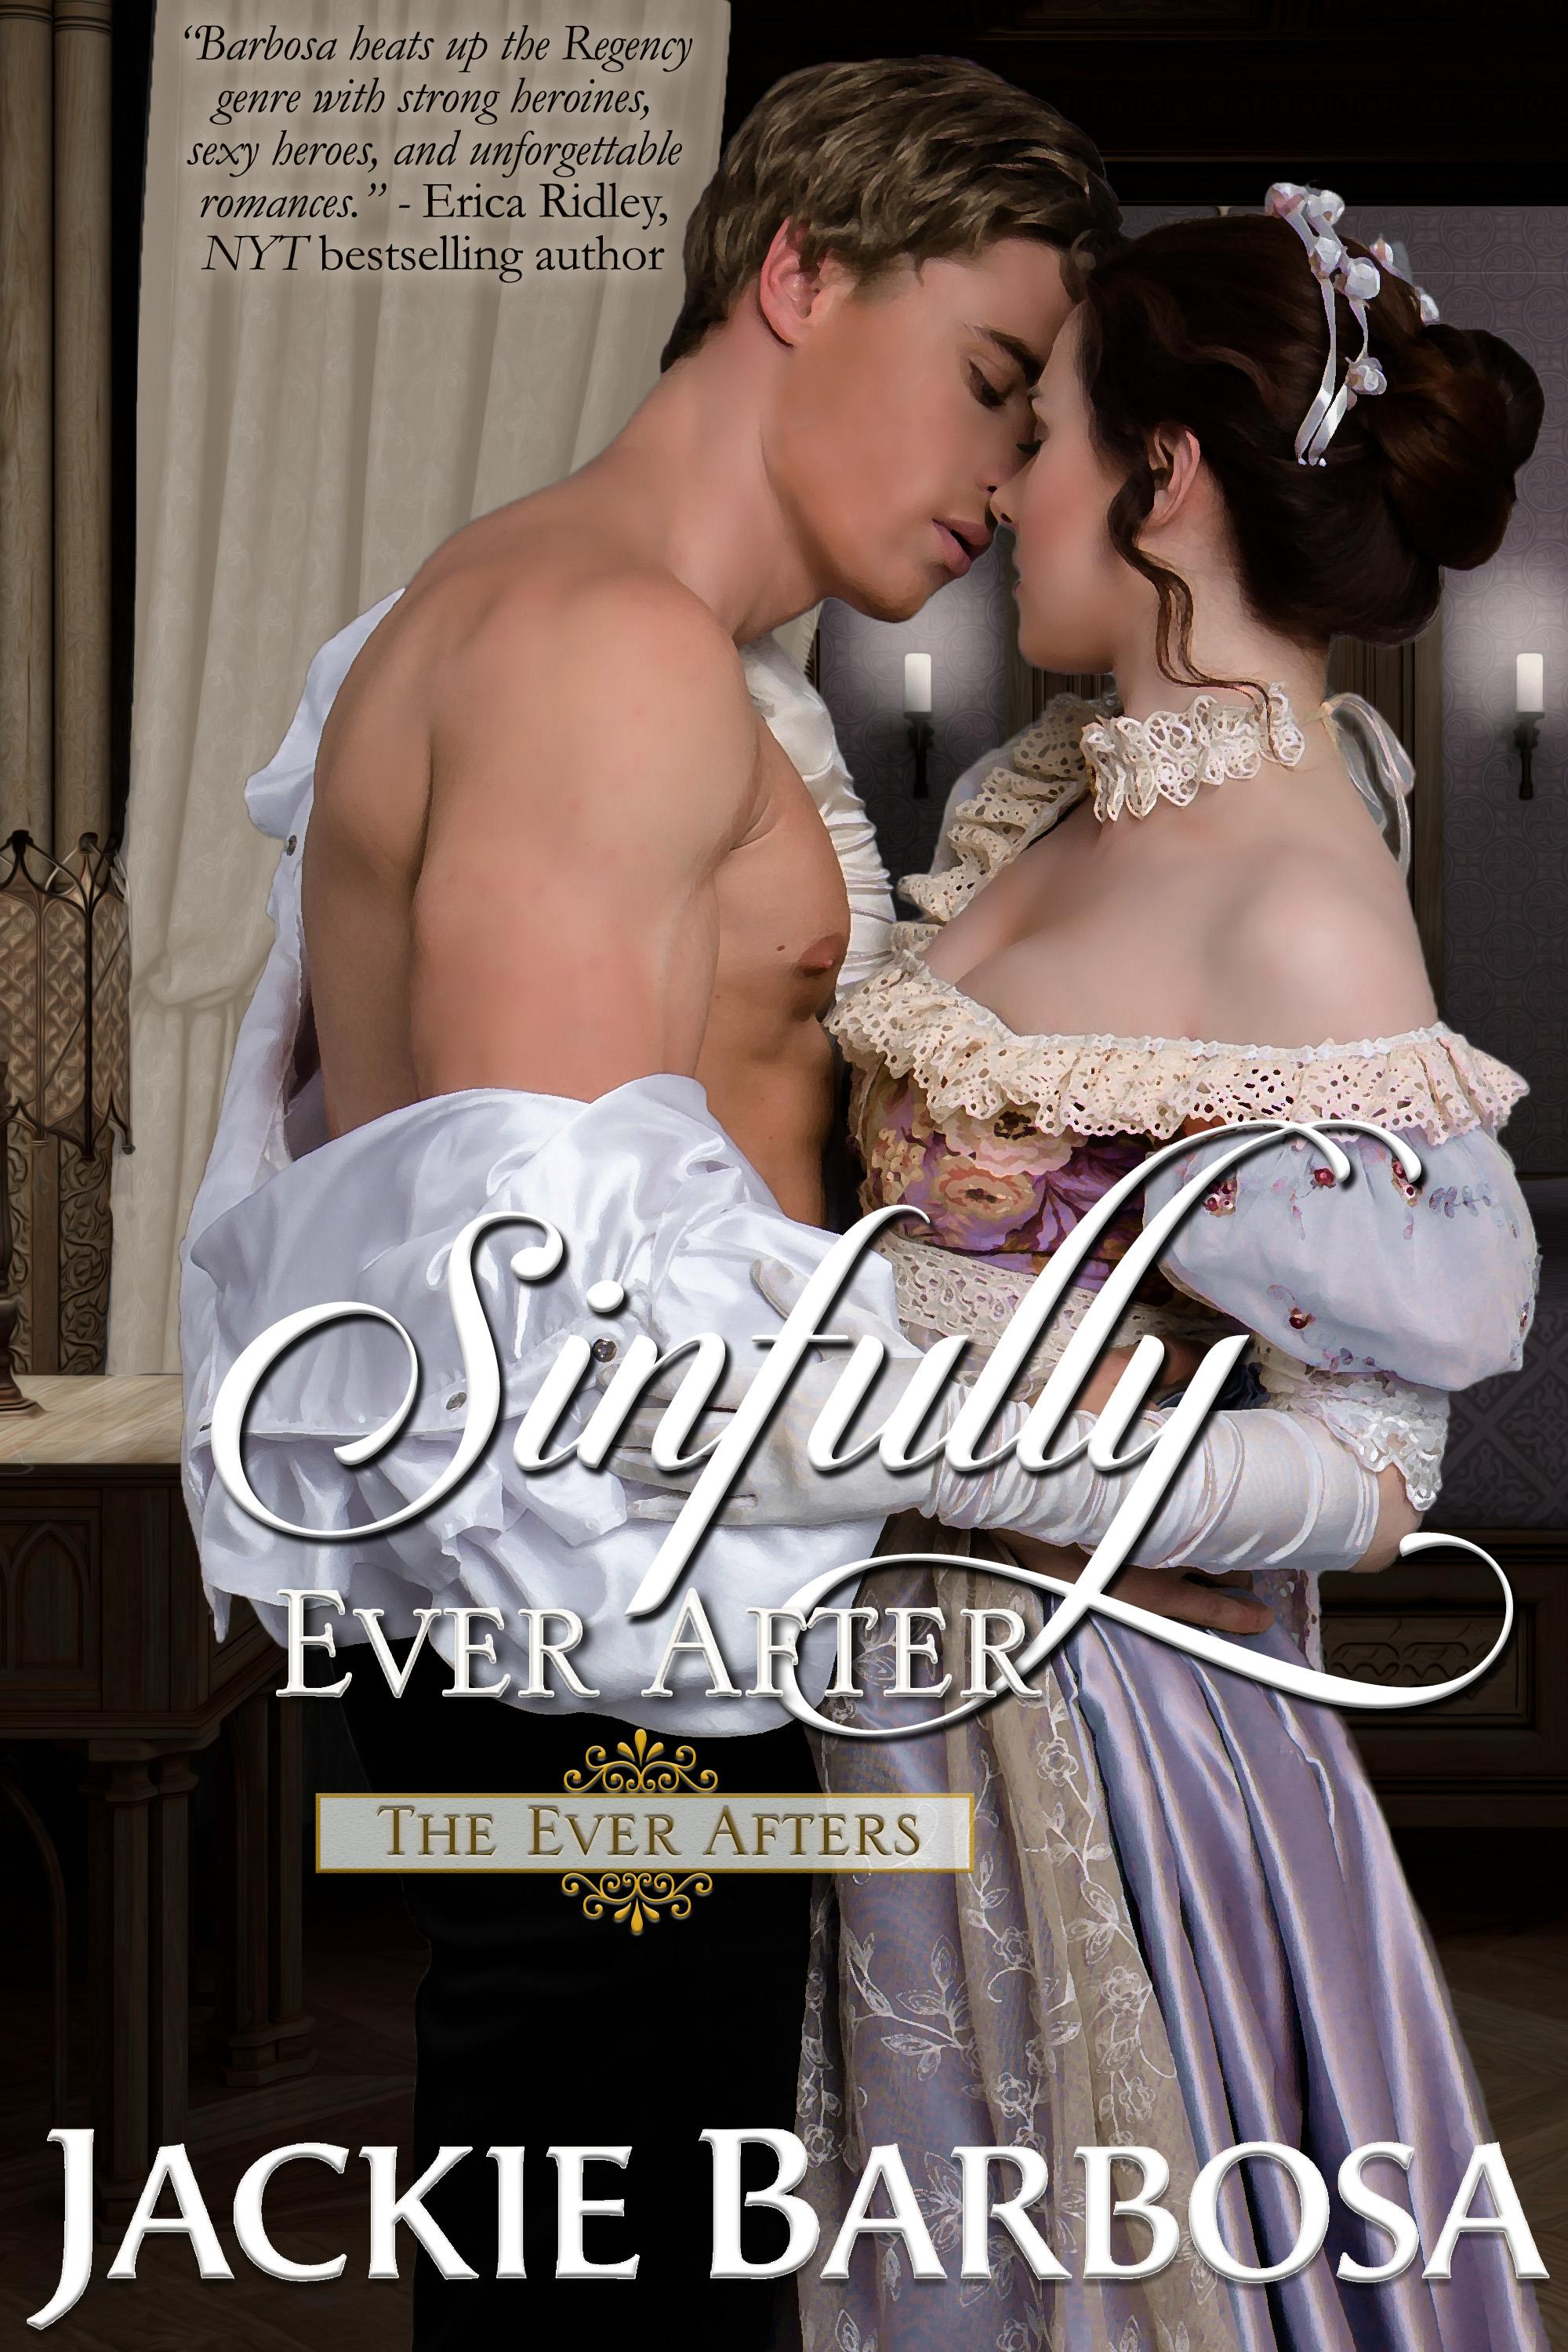 Sinfully Ever After by Jackie Barbosa